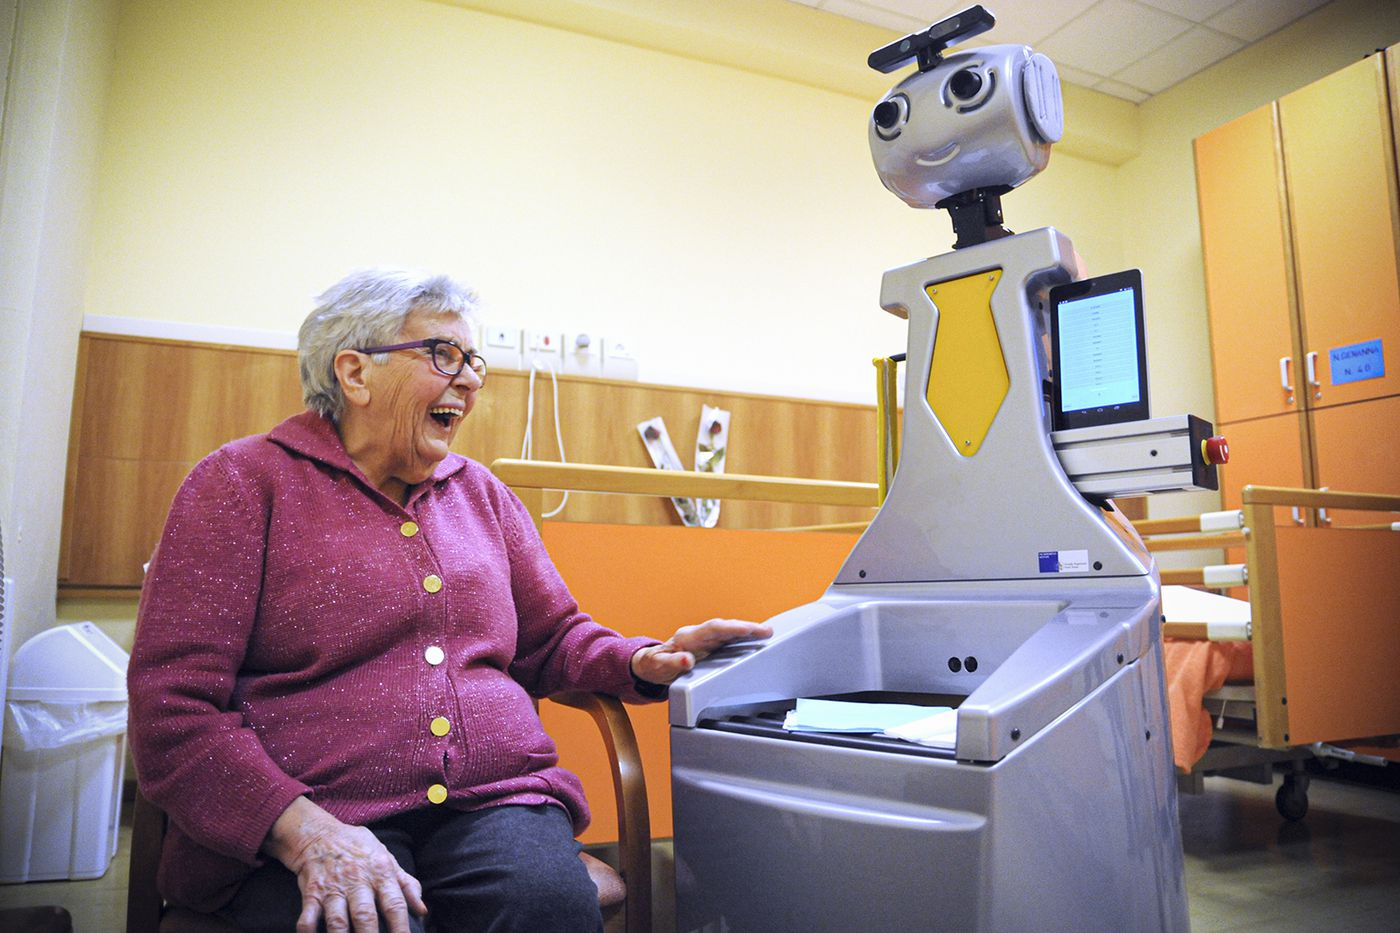 granny and the robot